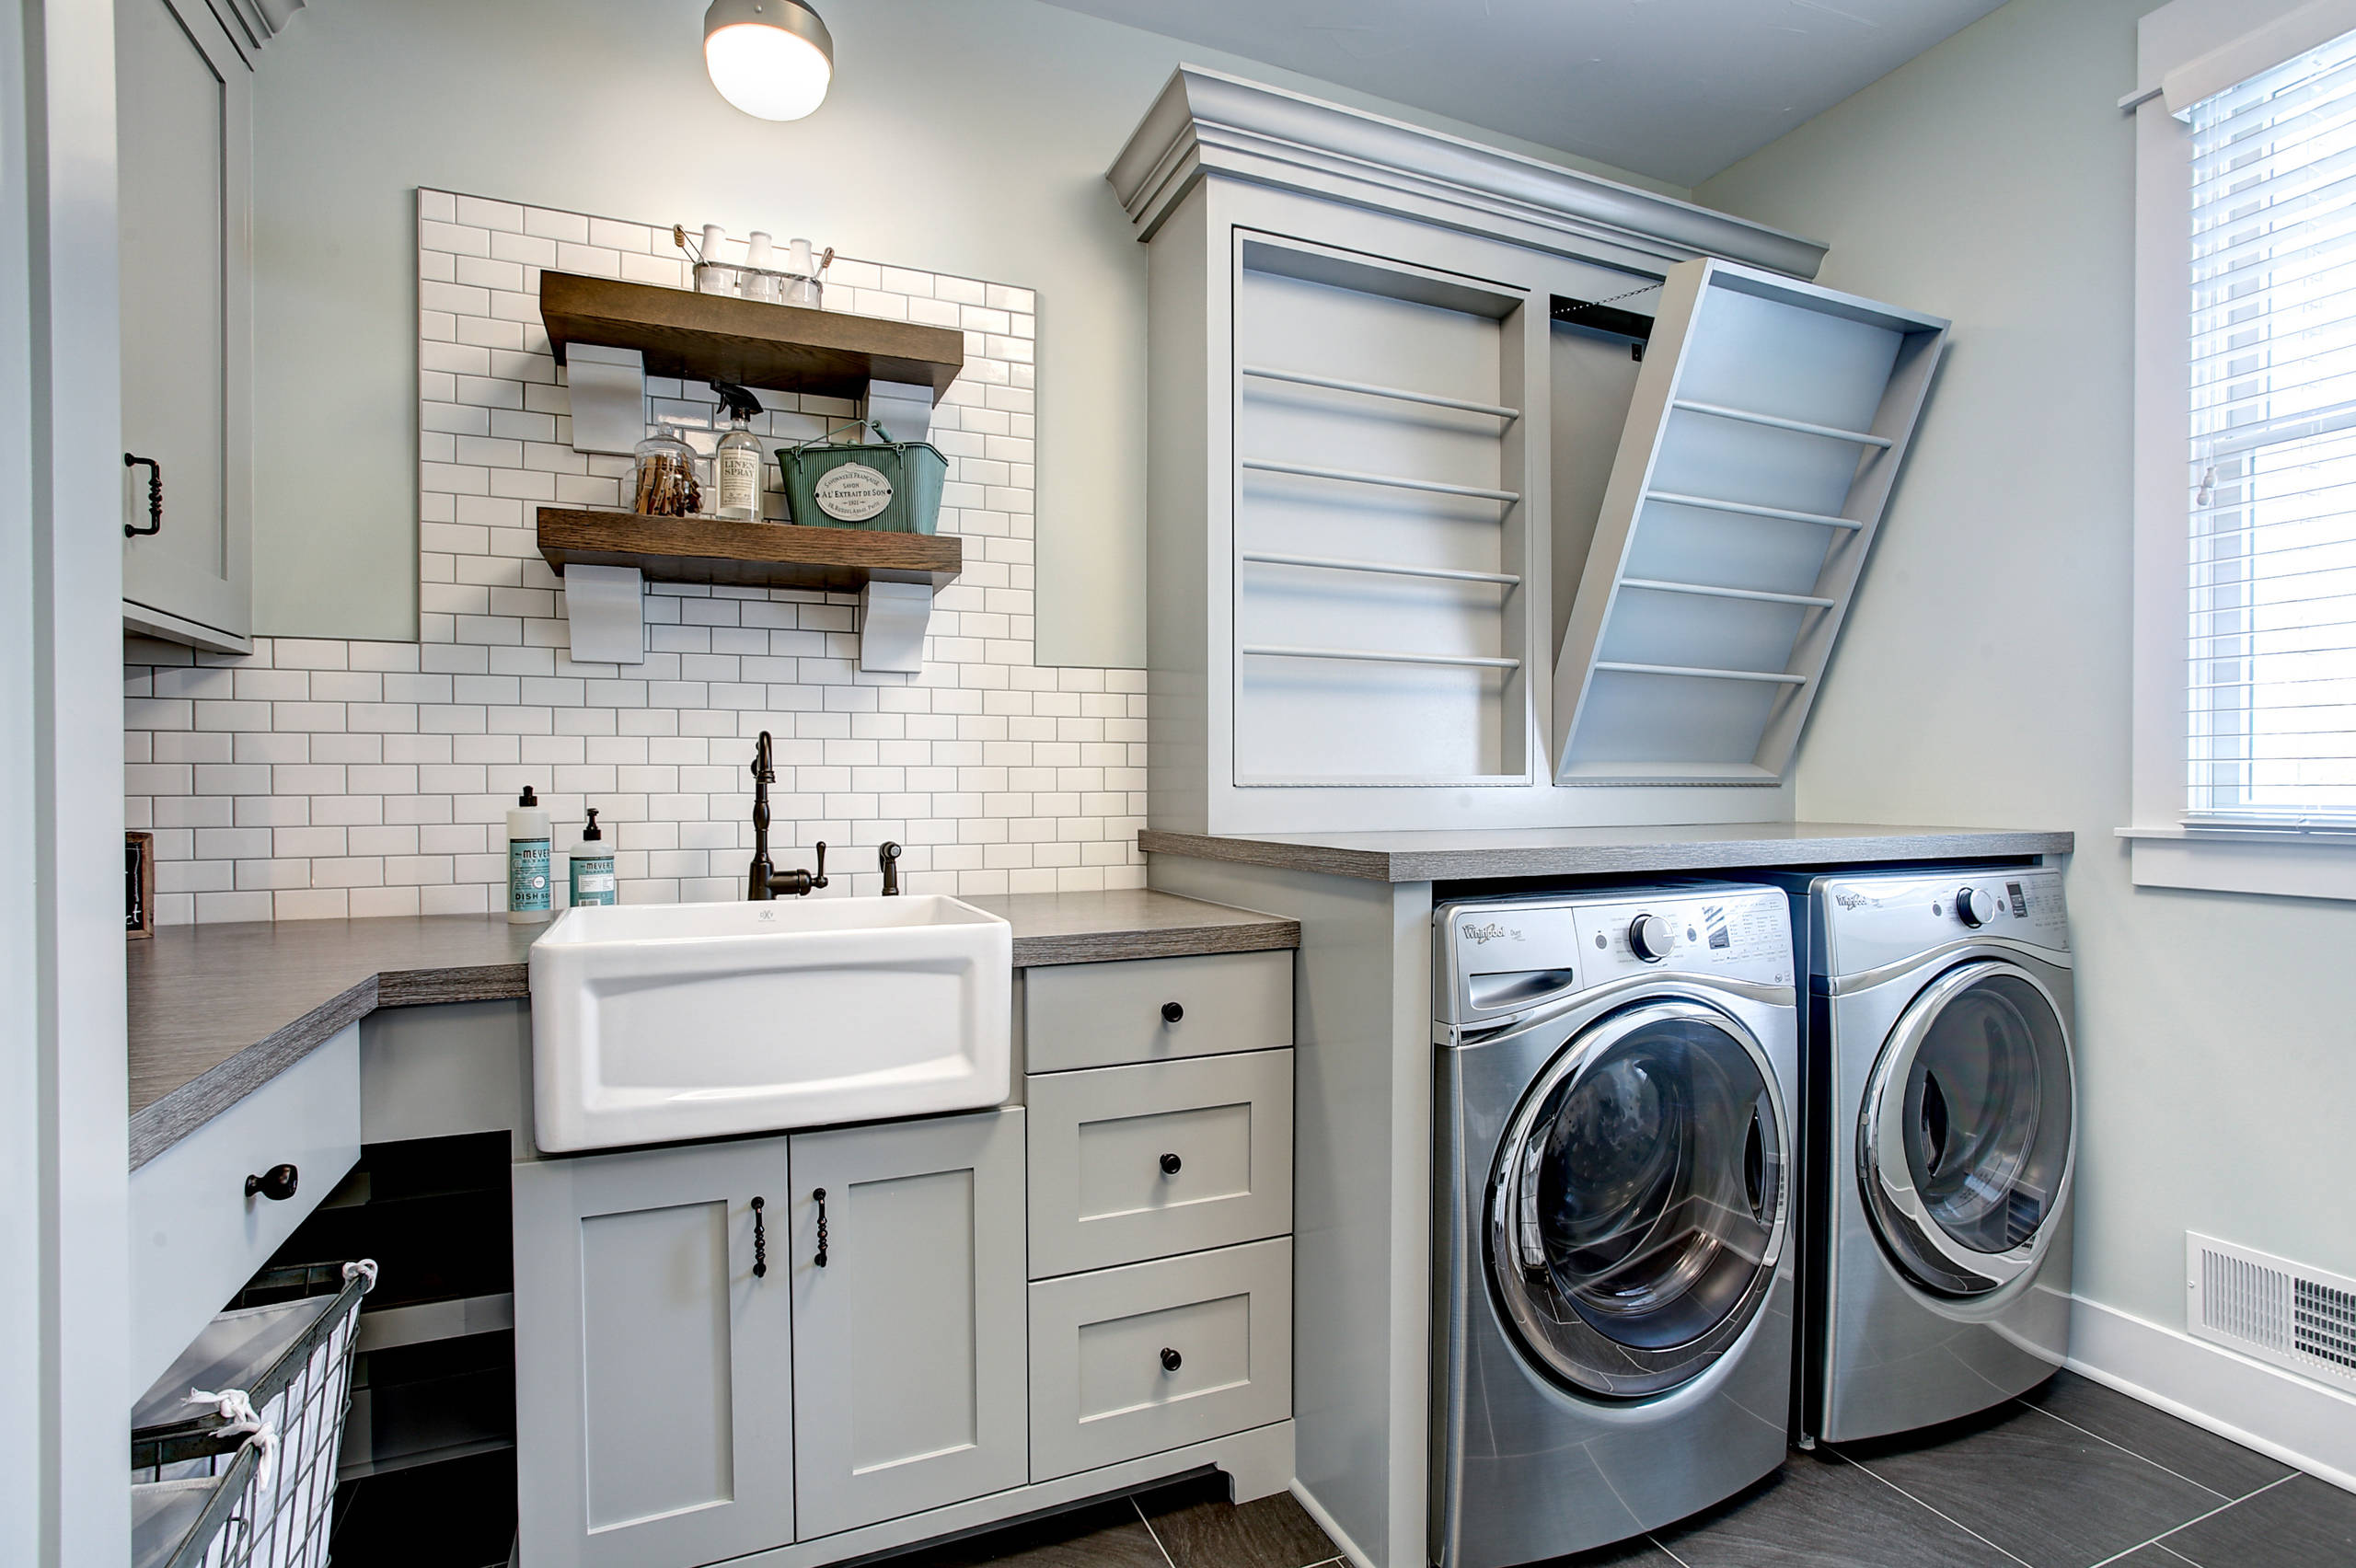 75 Beautiful Laundry Room Pictures Ideas March 2021 Houzz